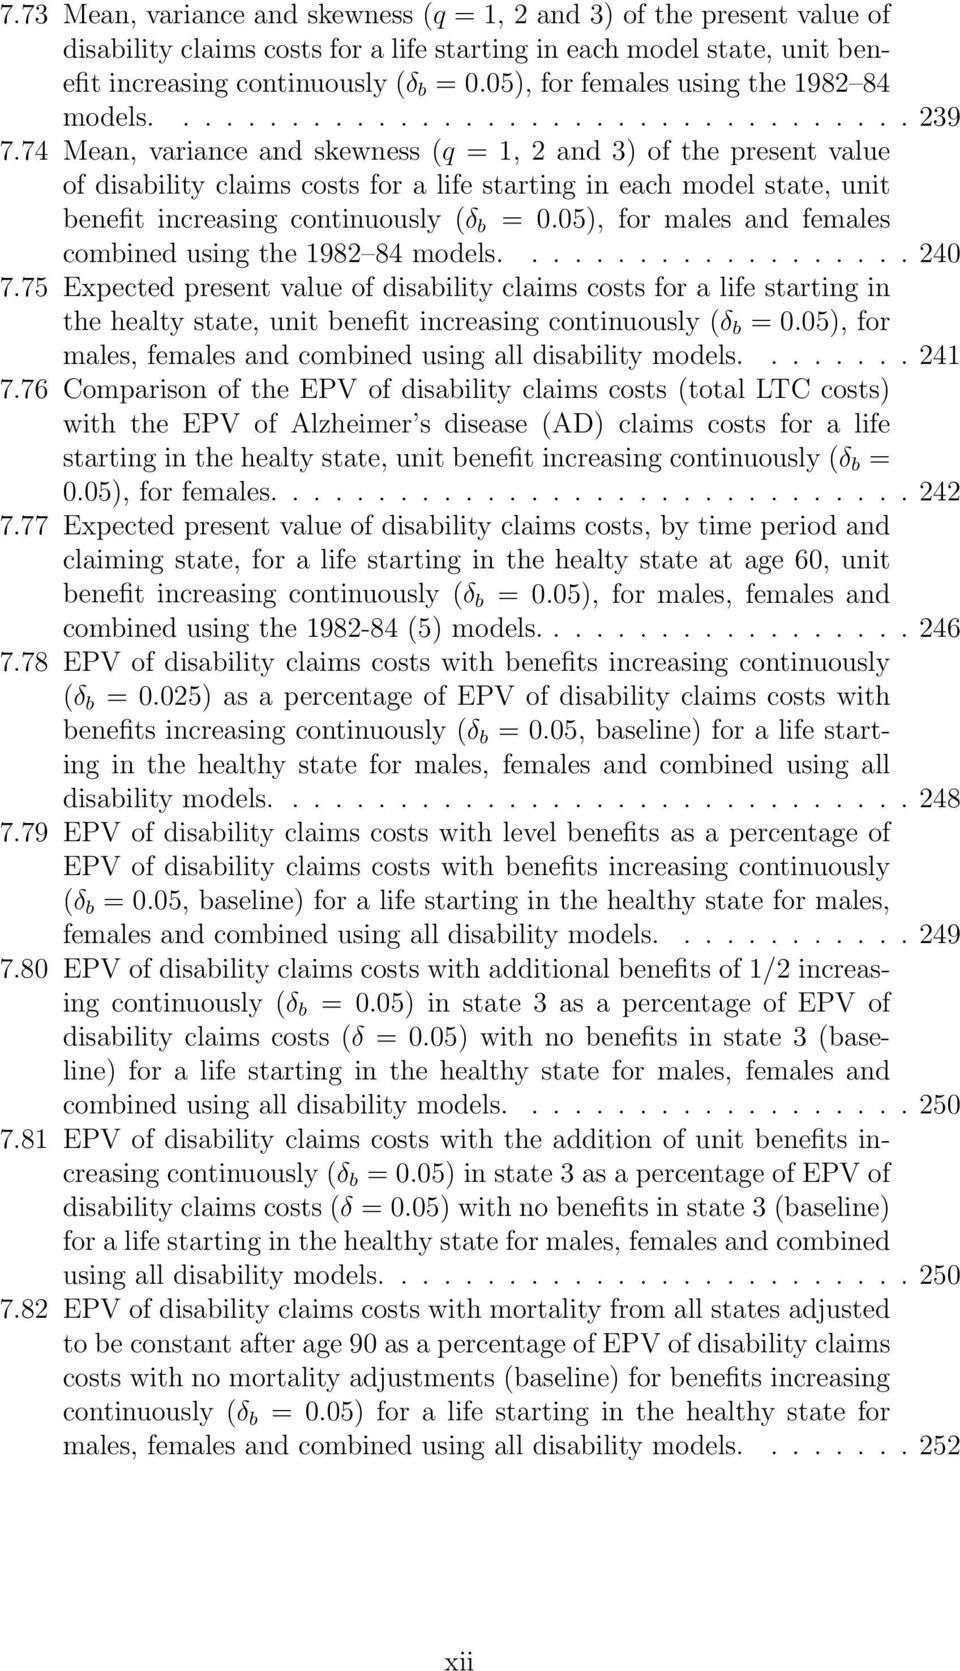 74 Mean, variance and skewness (q = 1, 2 and 3) of the present value of disability claims costs for a life starting in each model state, unit benefit increasing continuously (δ b =0.